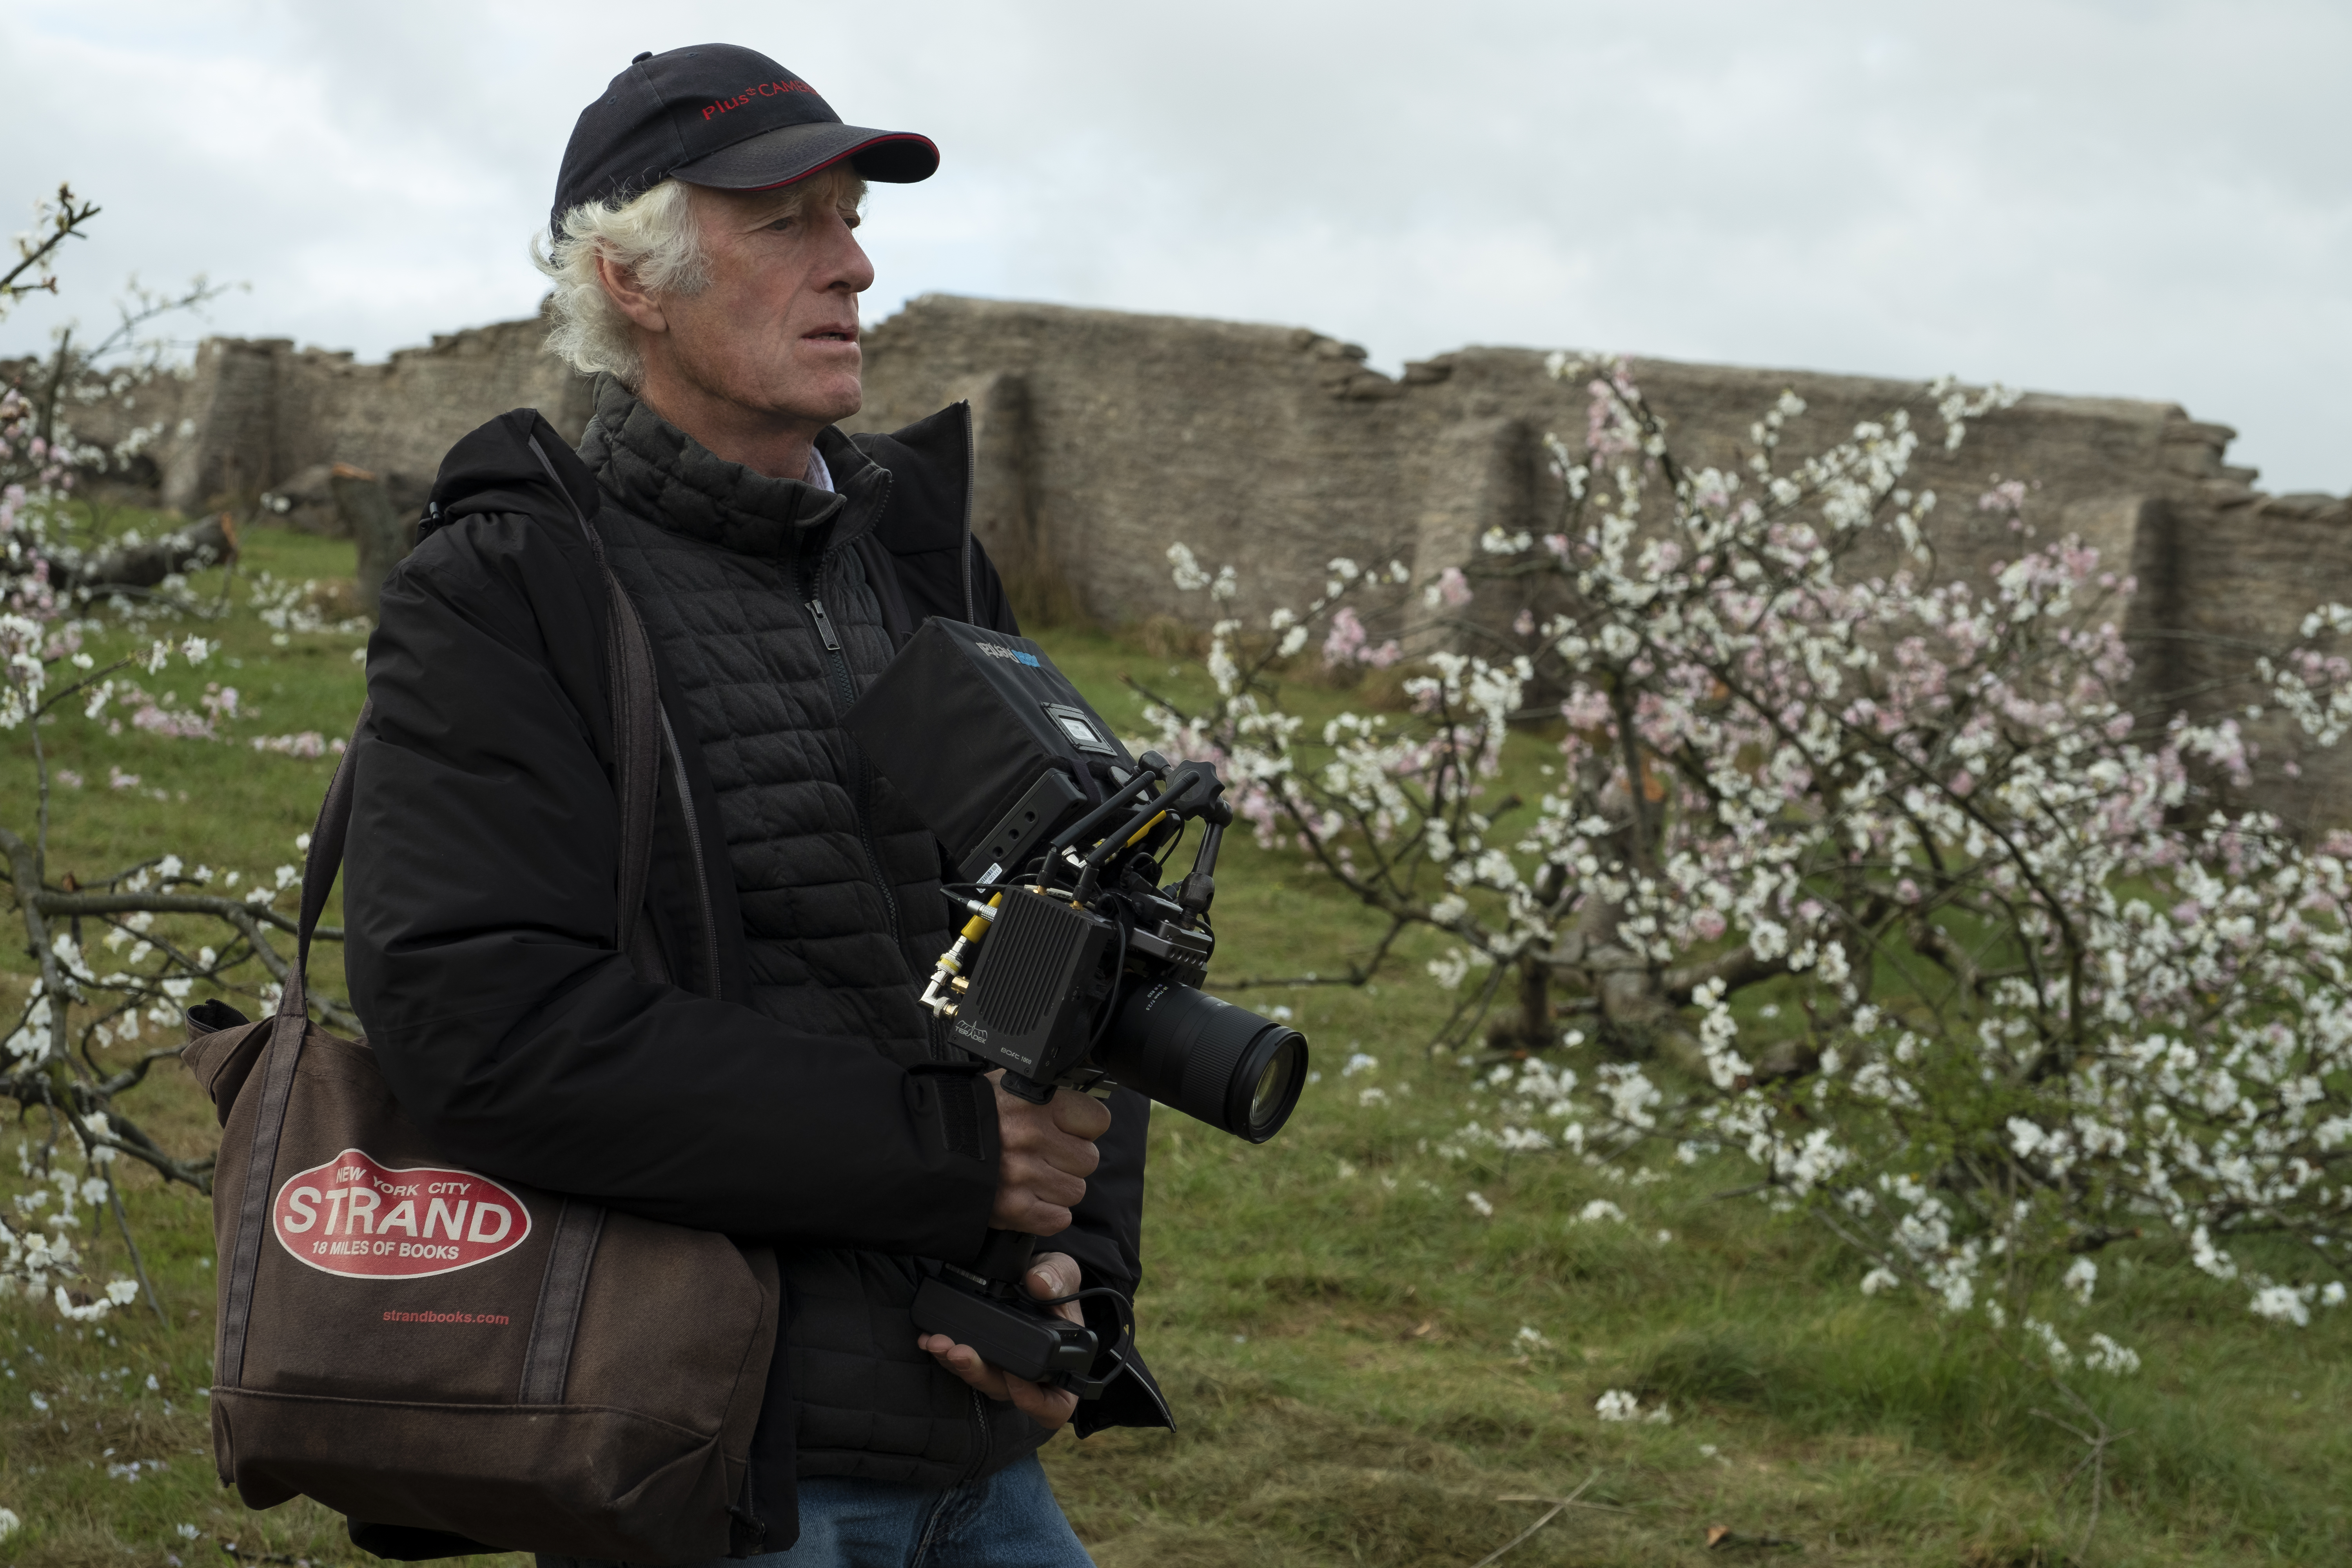 Influencers: Already Legendary, Roger Deakins Breaks New Ground